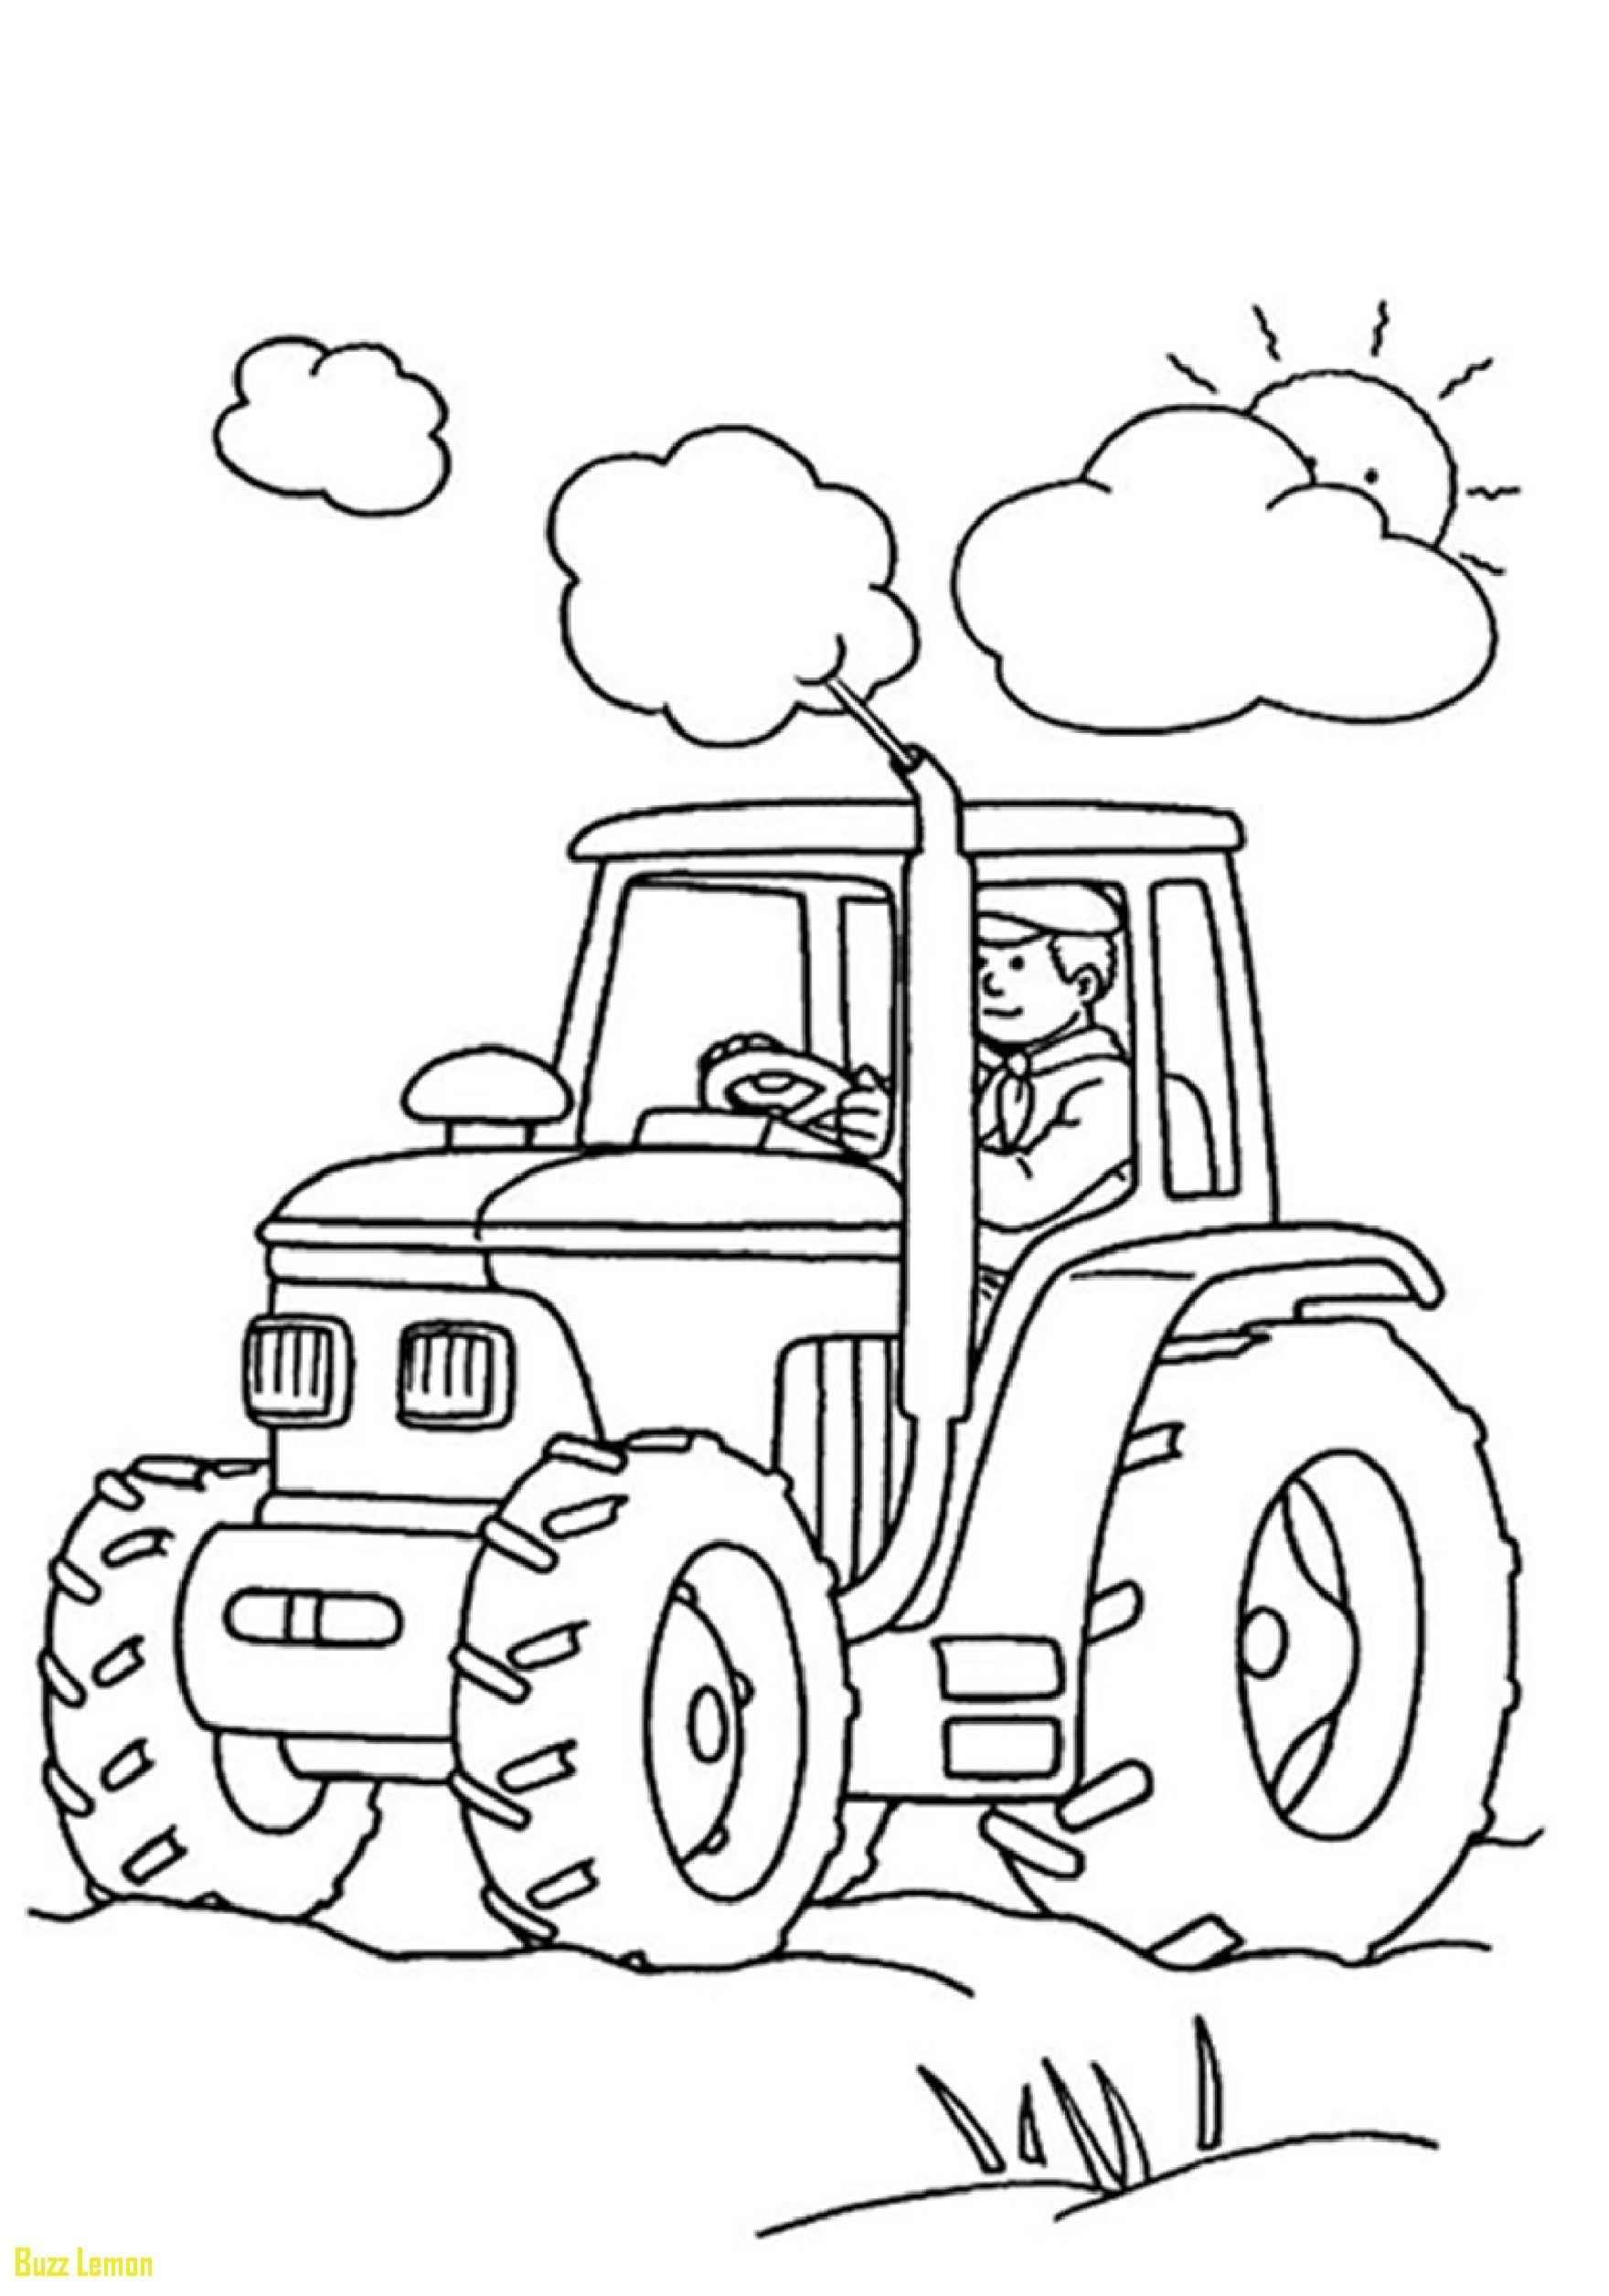 Childrens Coloring Pages Disney in 2020   Cartoon coloring pages ...   2512x1760